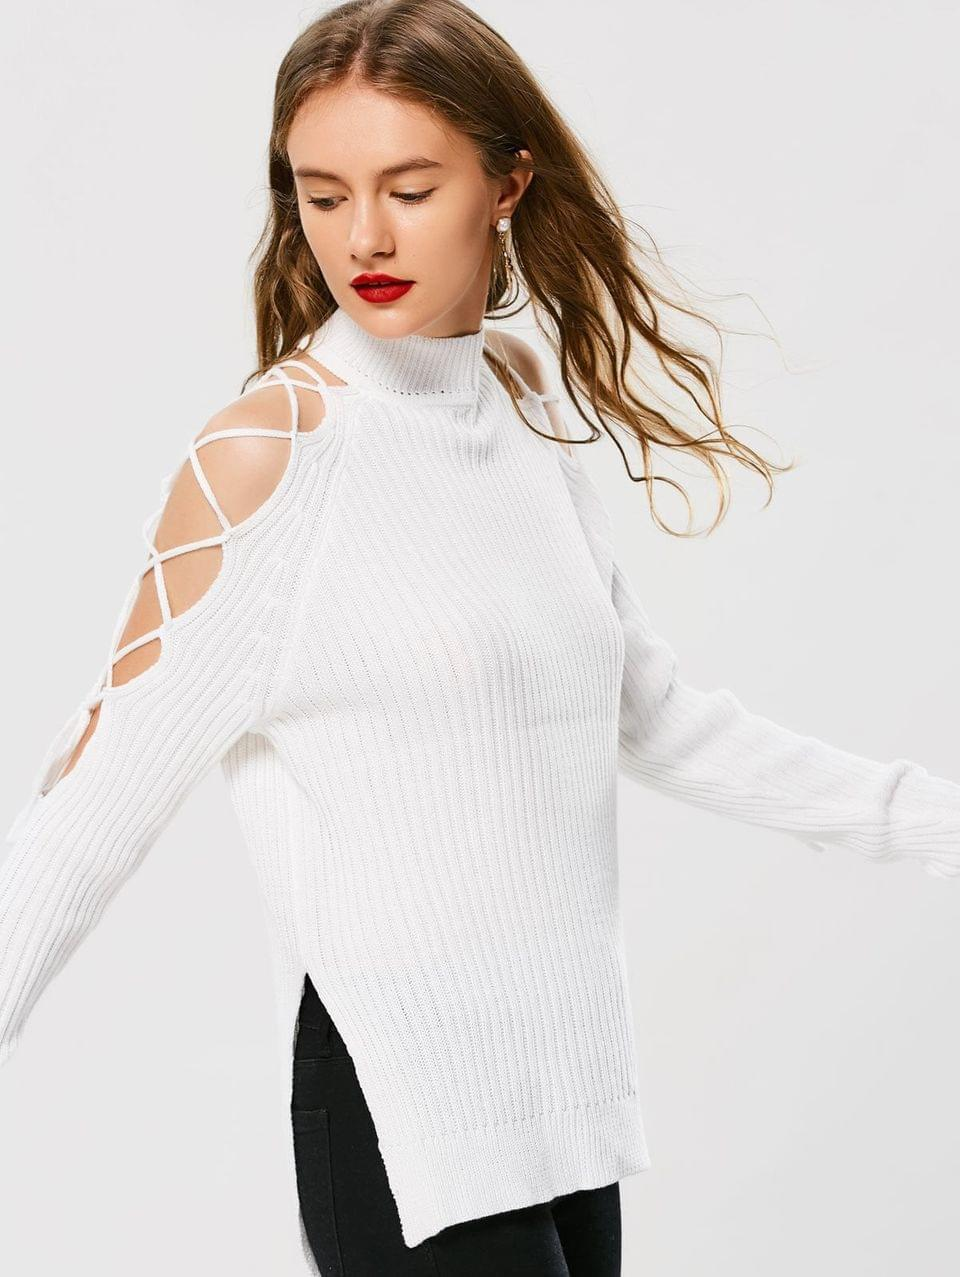 Women's Lace Up High Neck Sweater - White